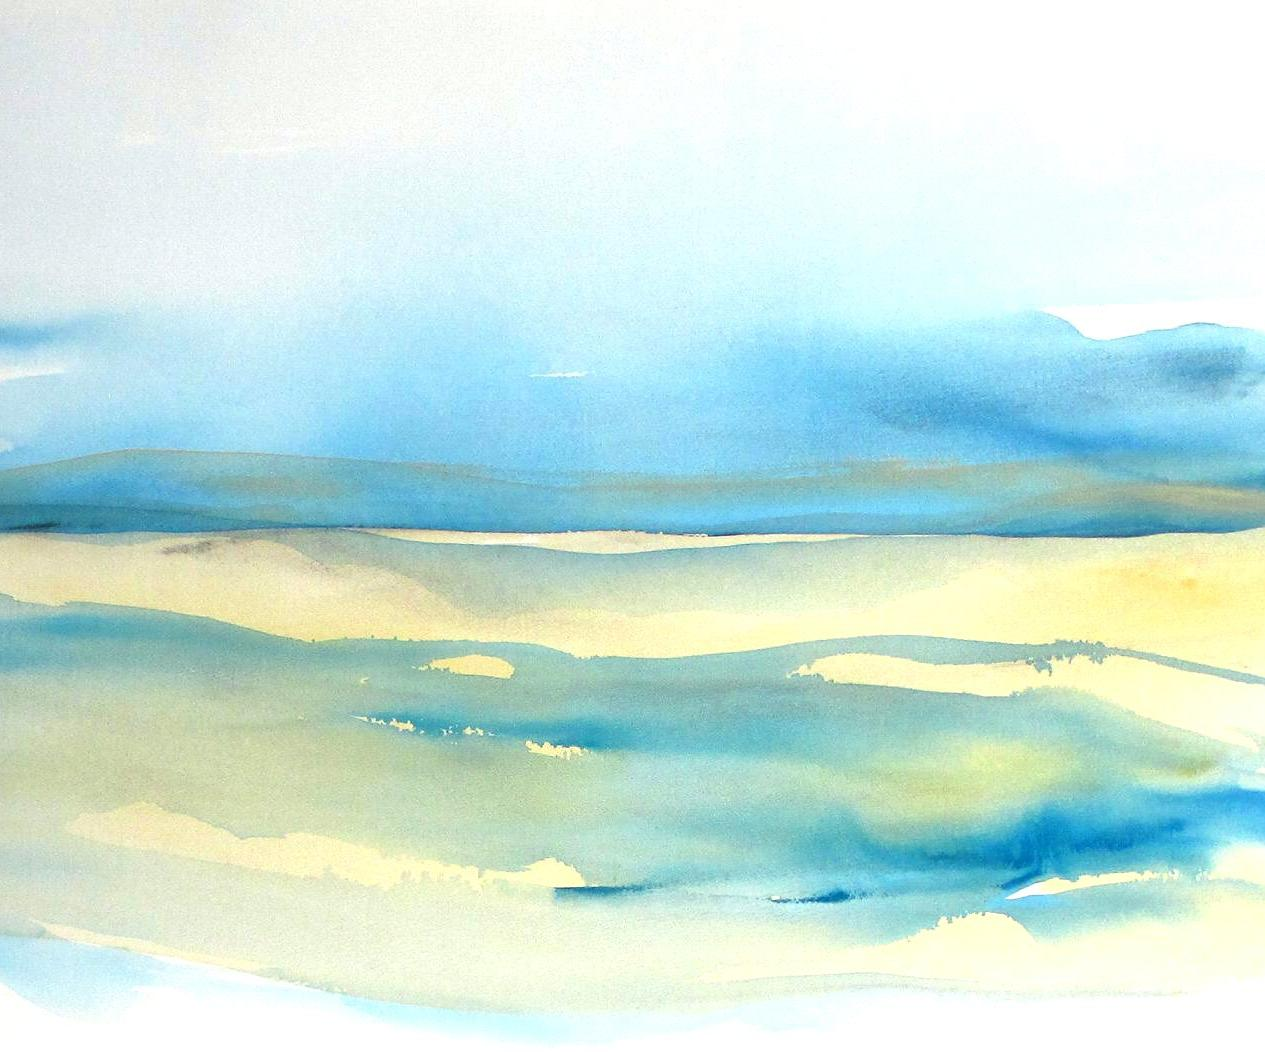 abstract seascape watercolor